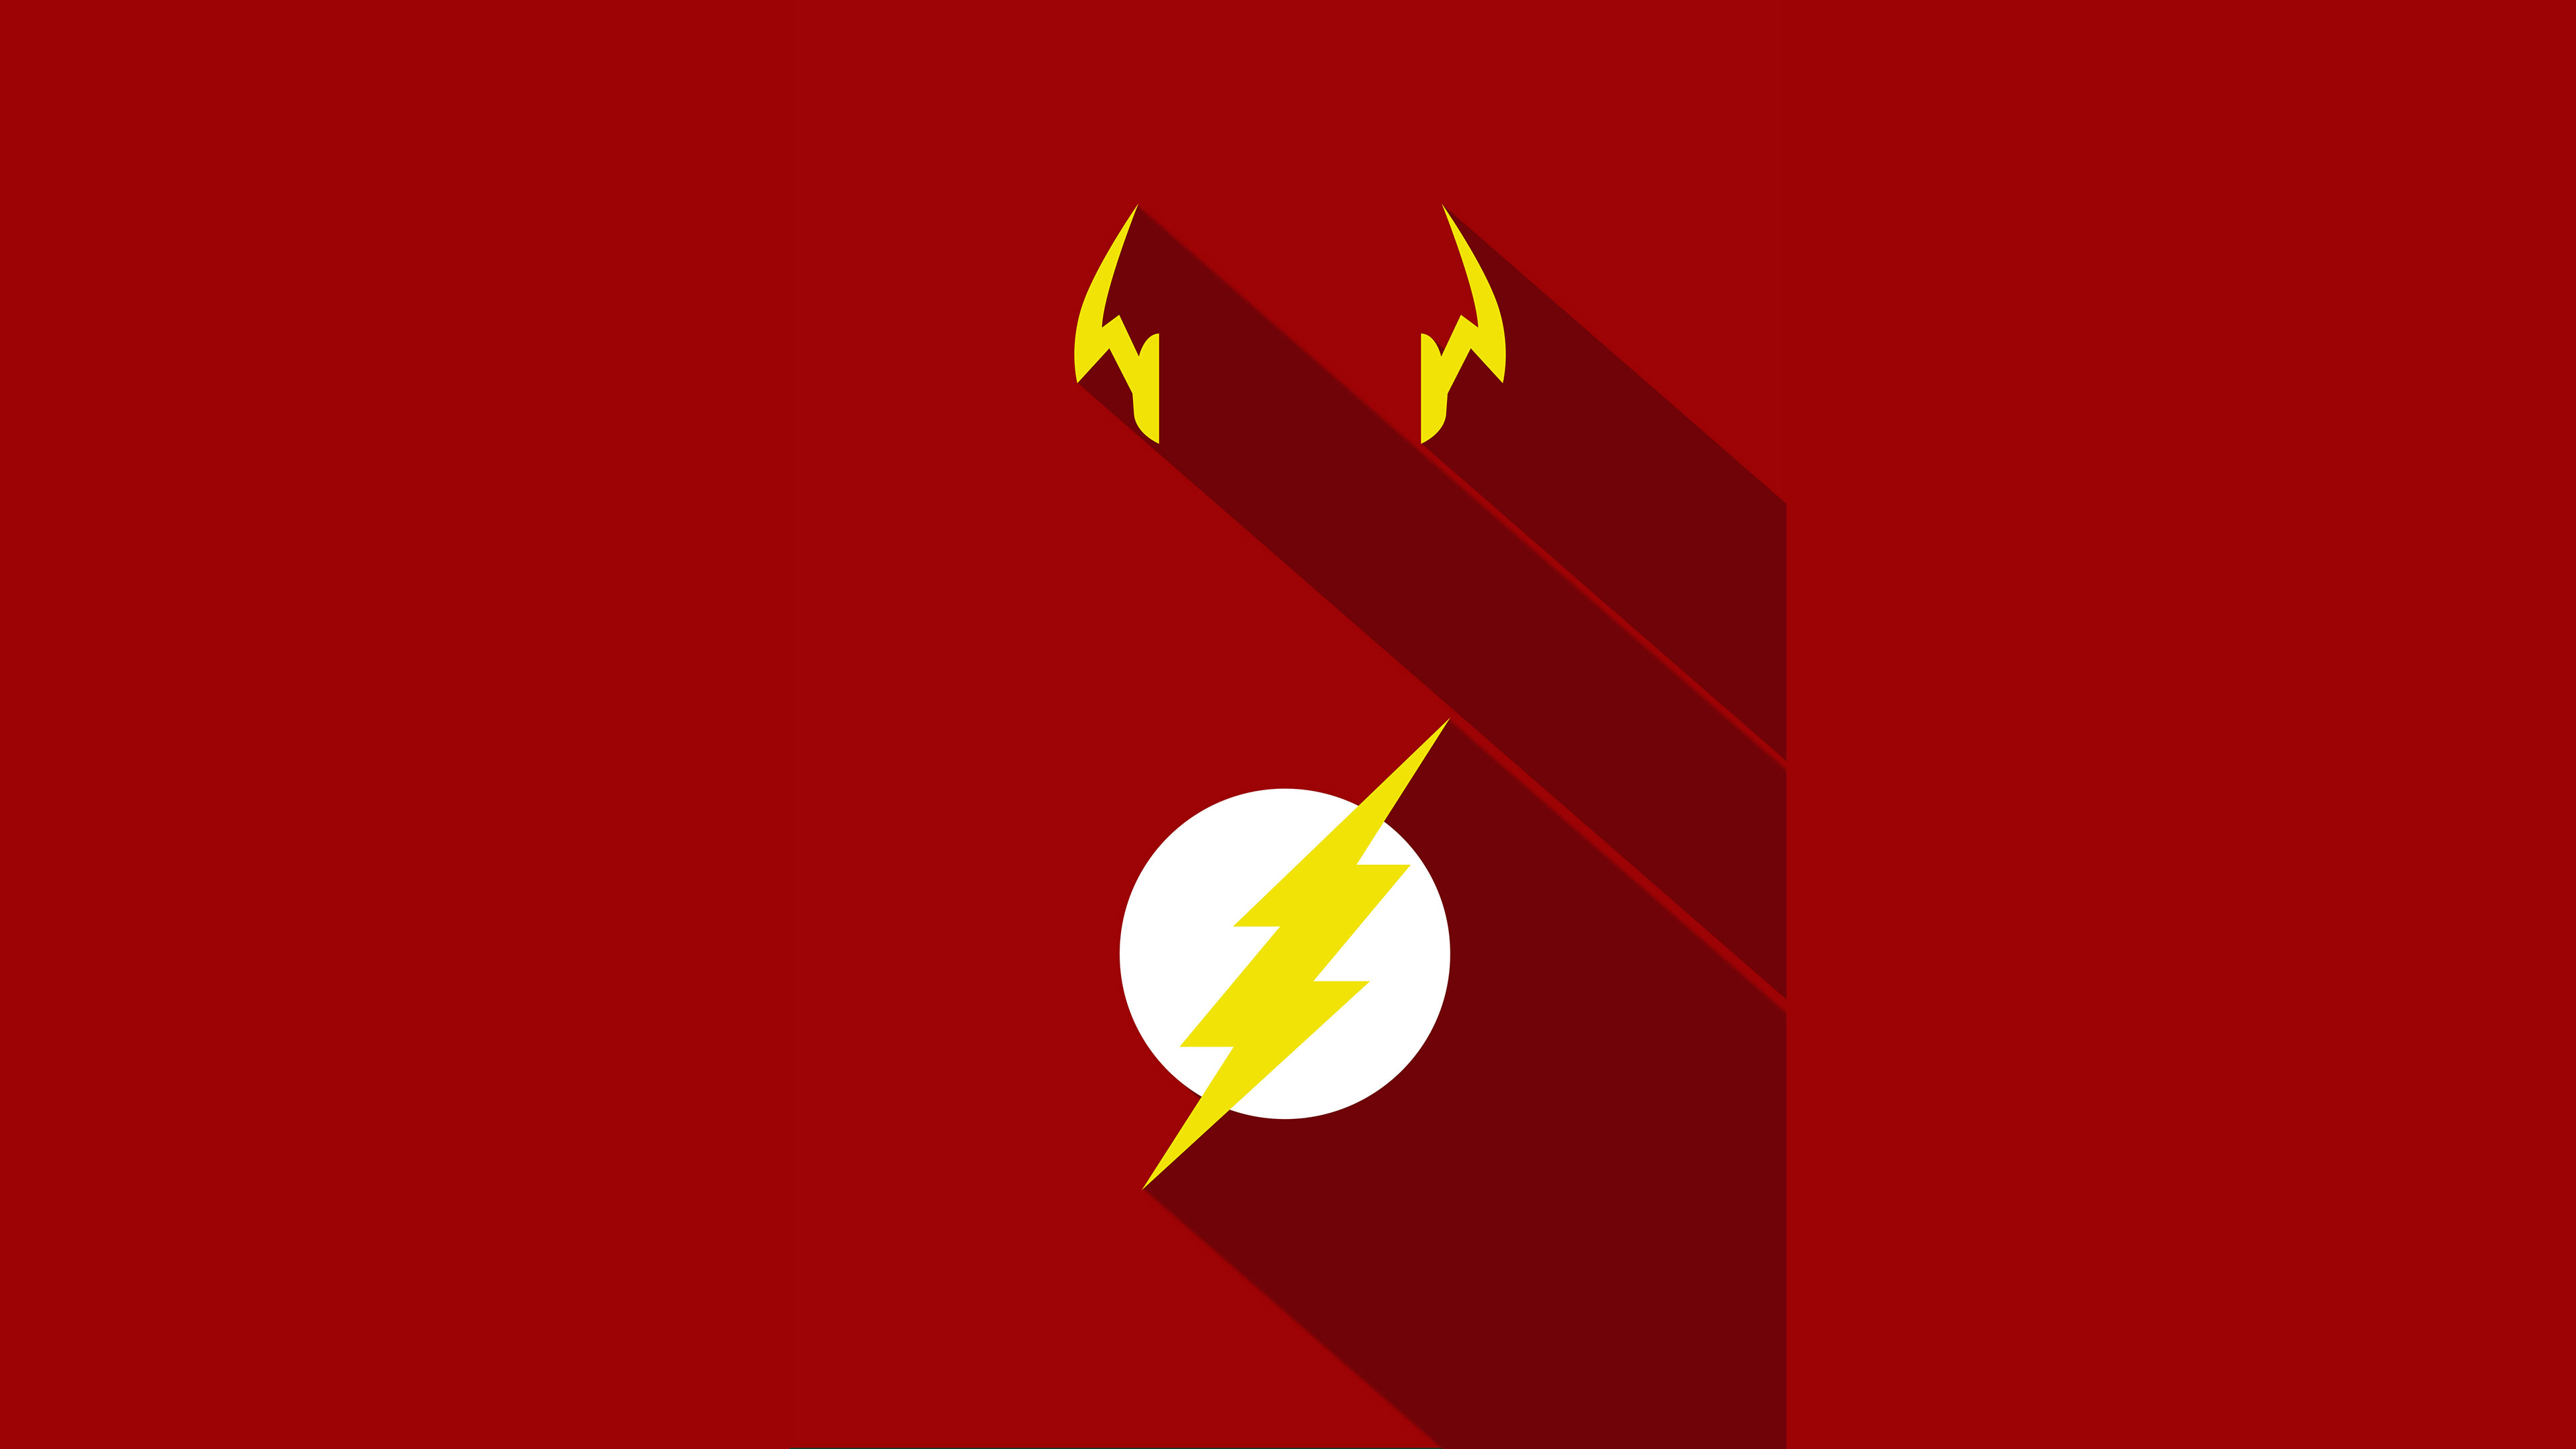 Heart Breaking Quotes Wallpapers Flash Minimalism Poster Hd Superheroes 4k Wallpapers